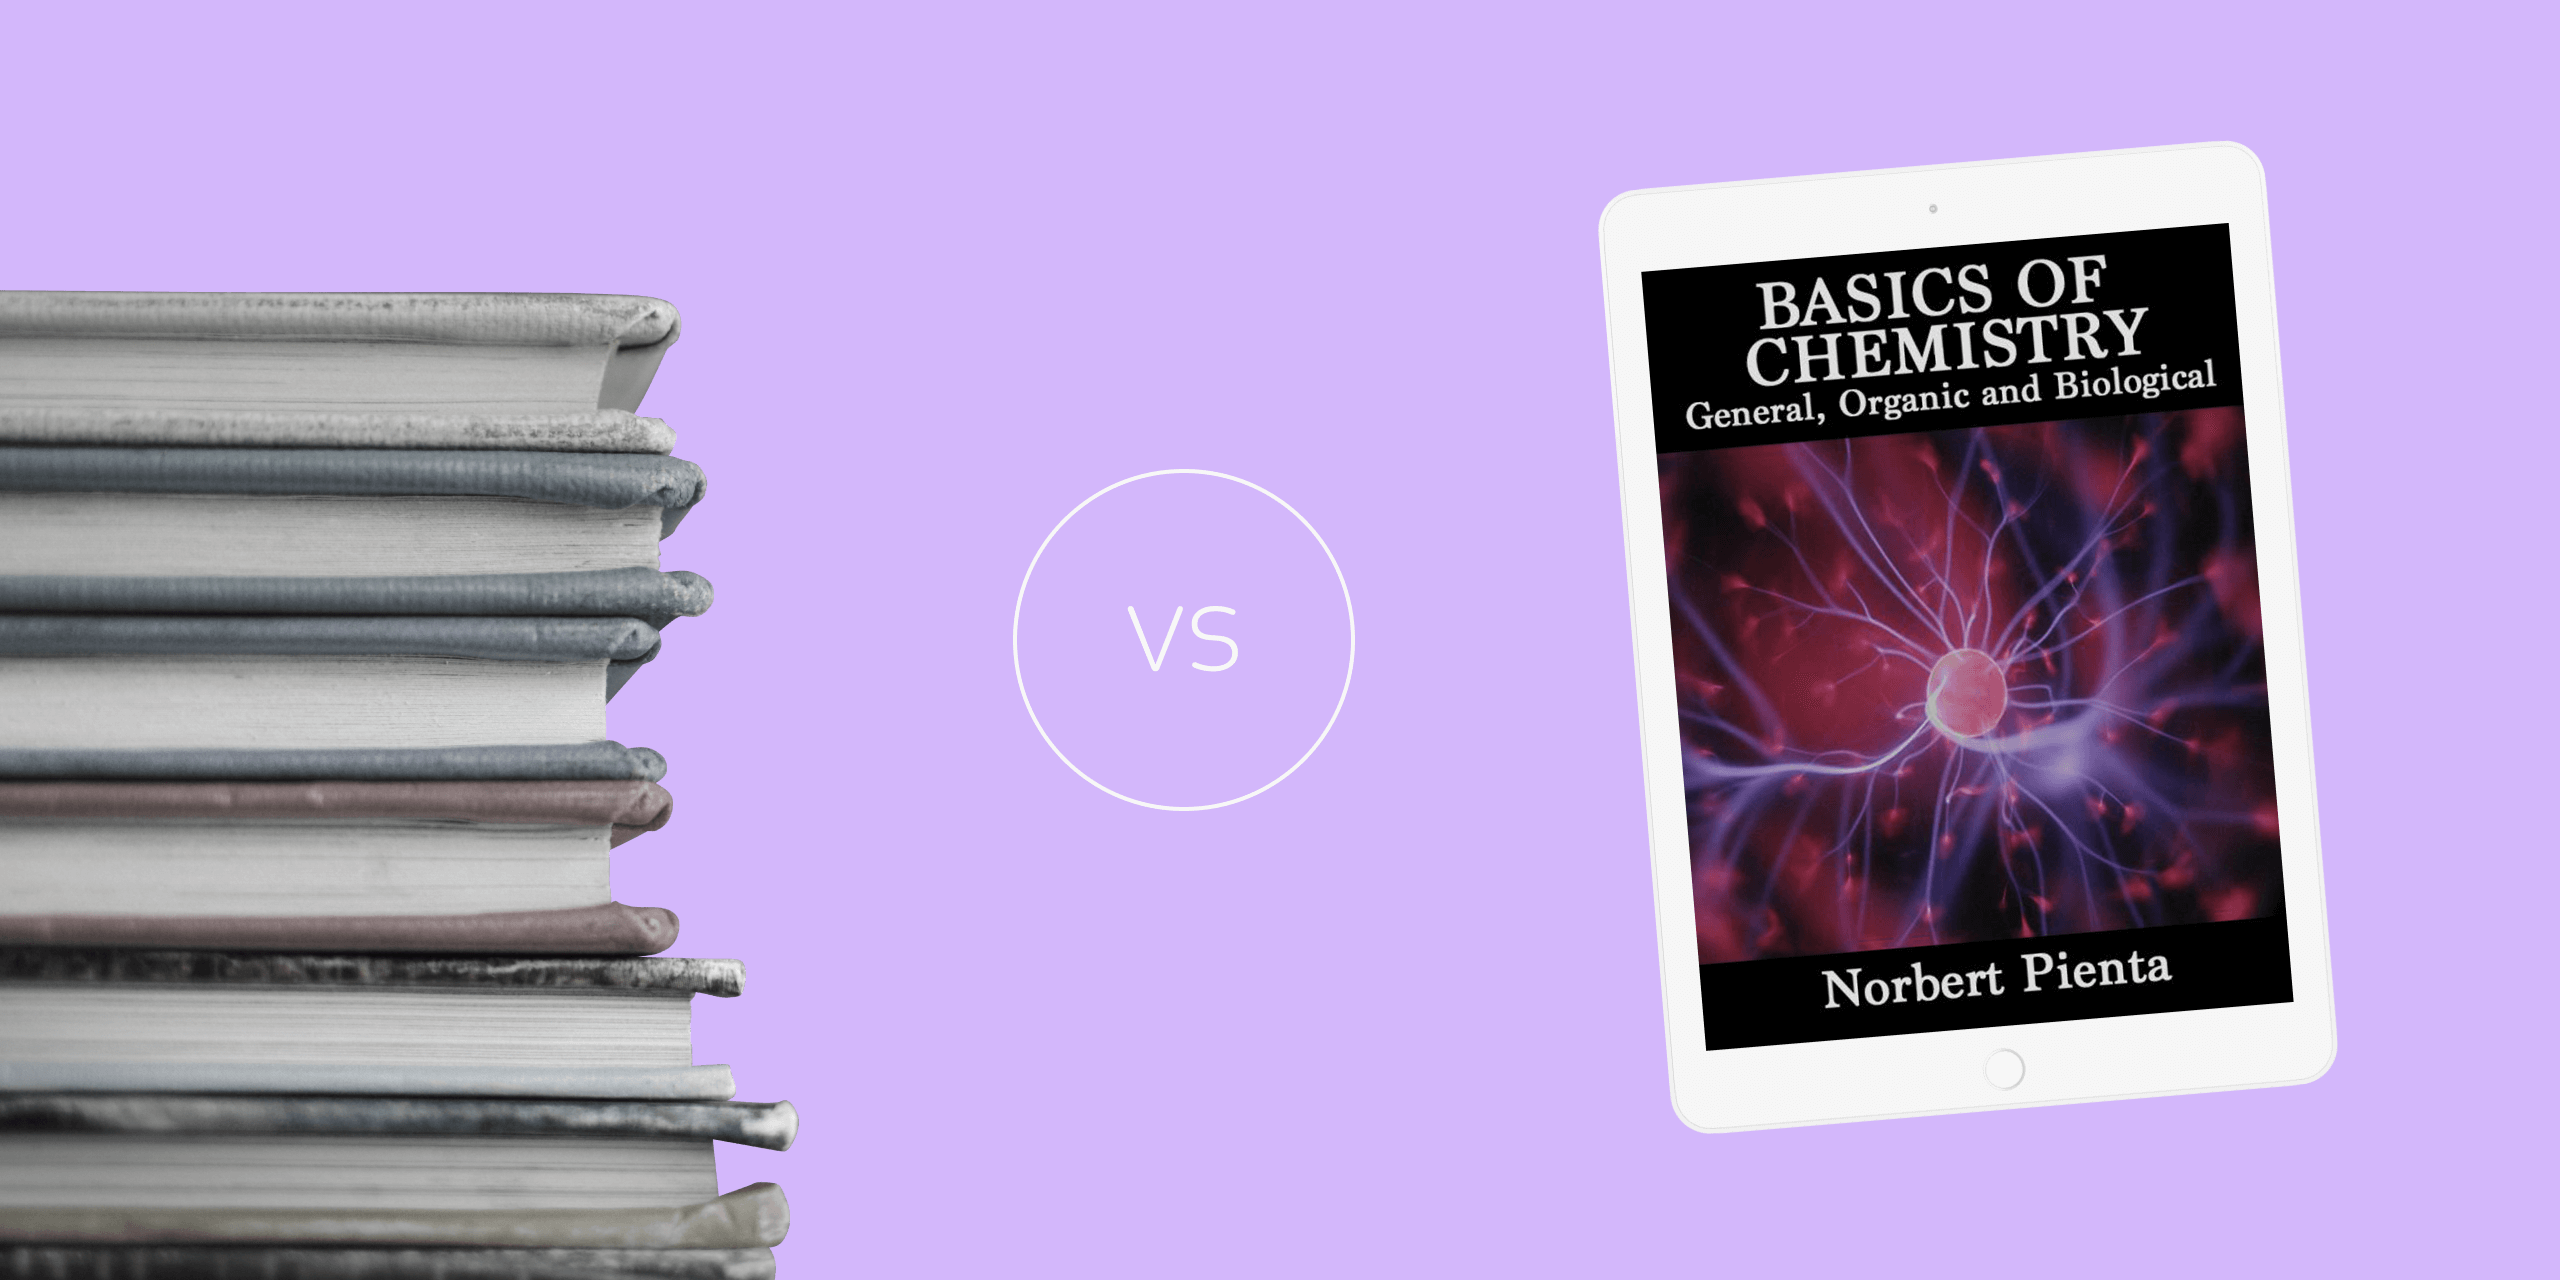 Basic Chemistry Textbooks: Which Is The Best?